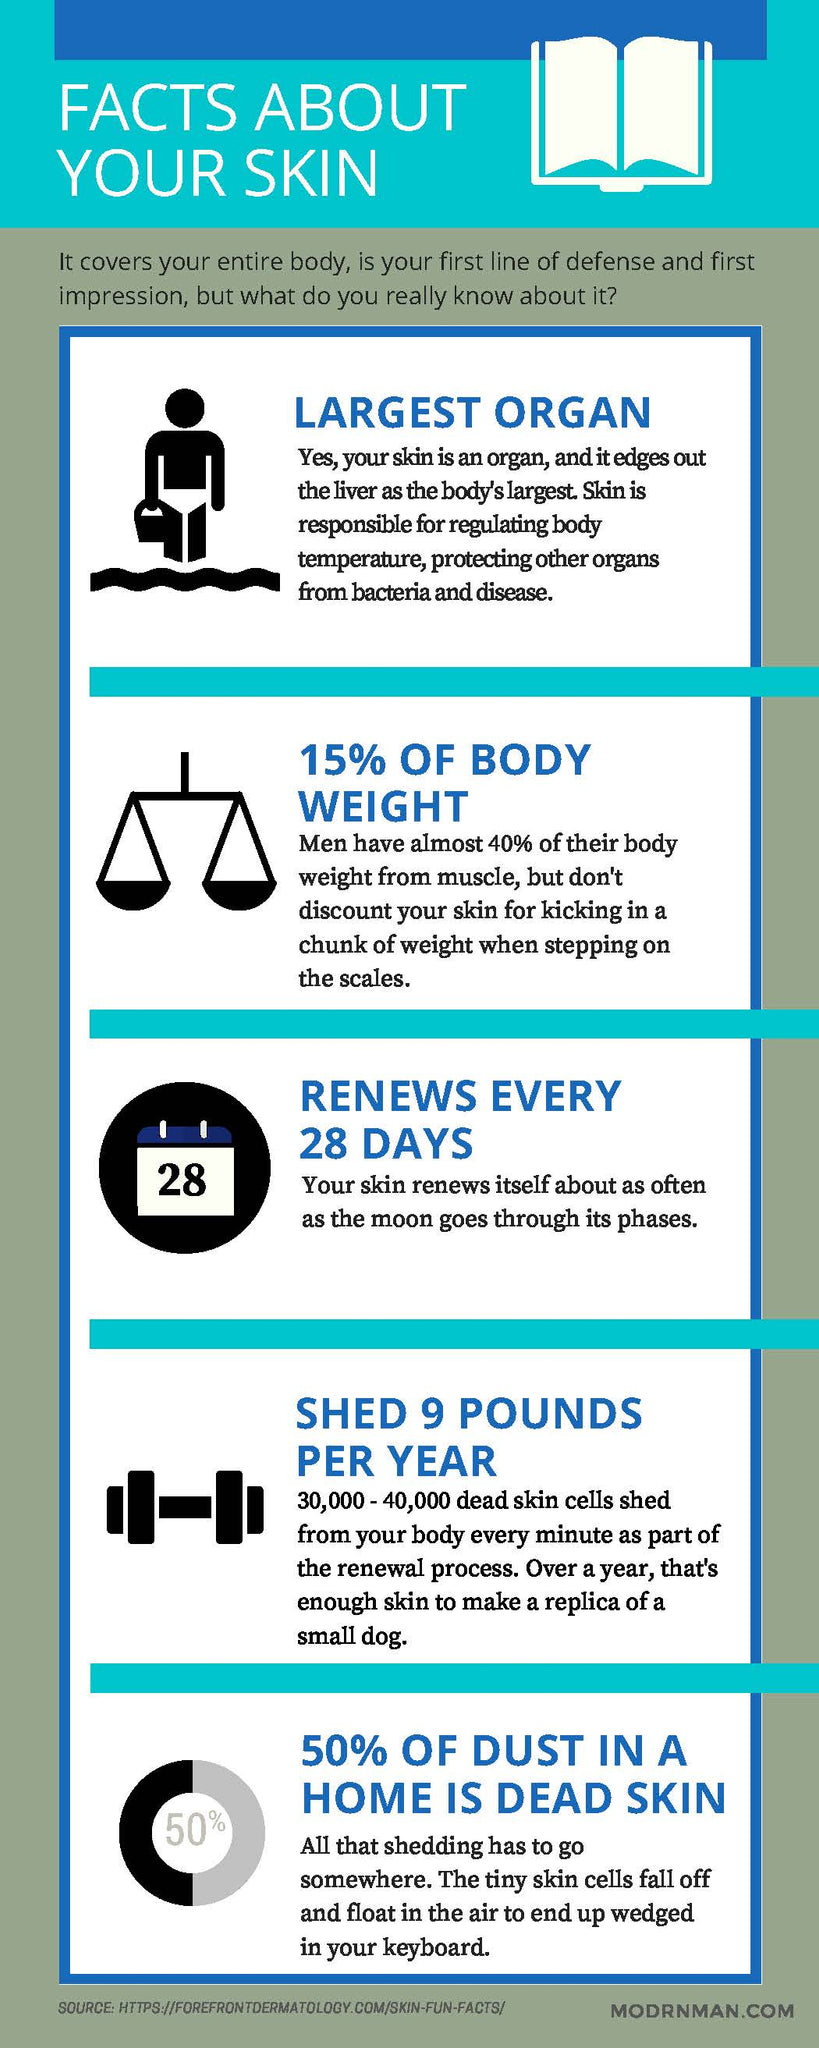 Compelling facts about men's skin.